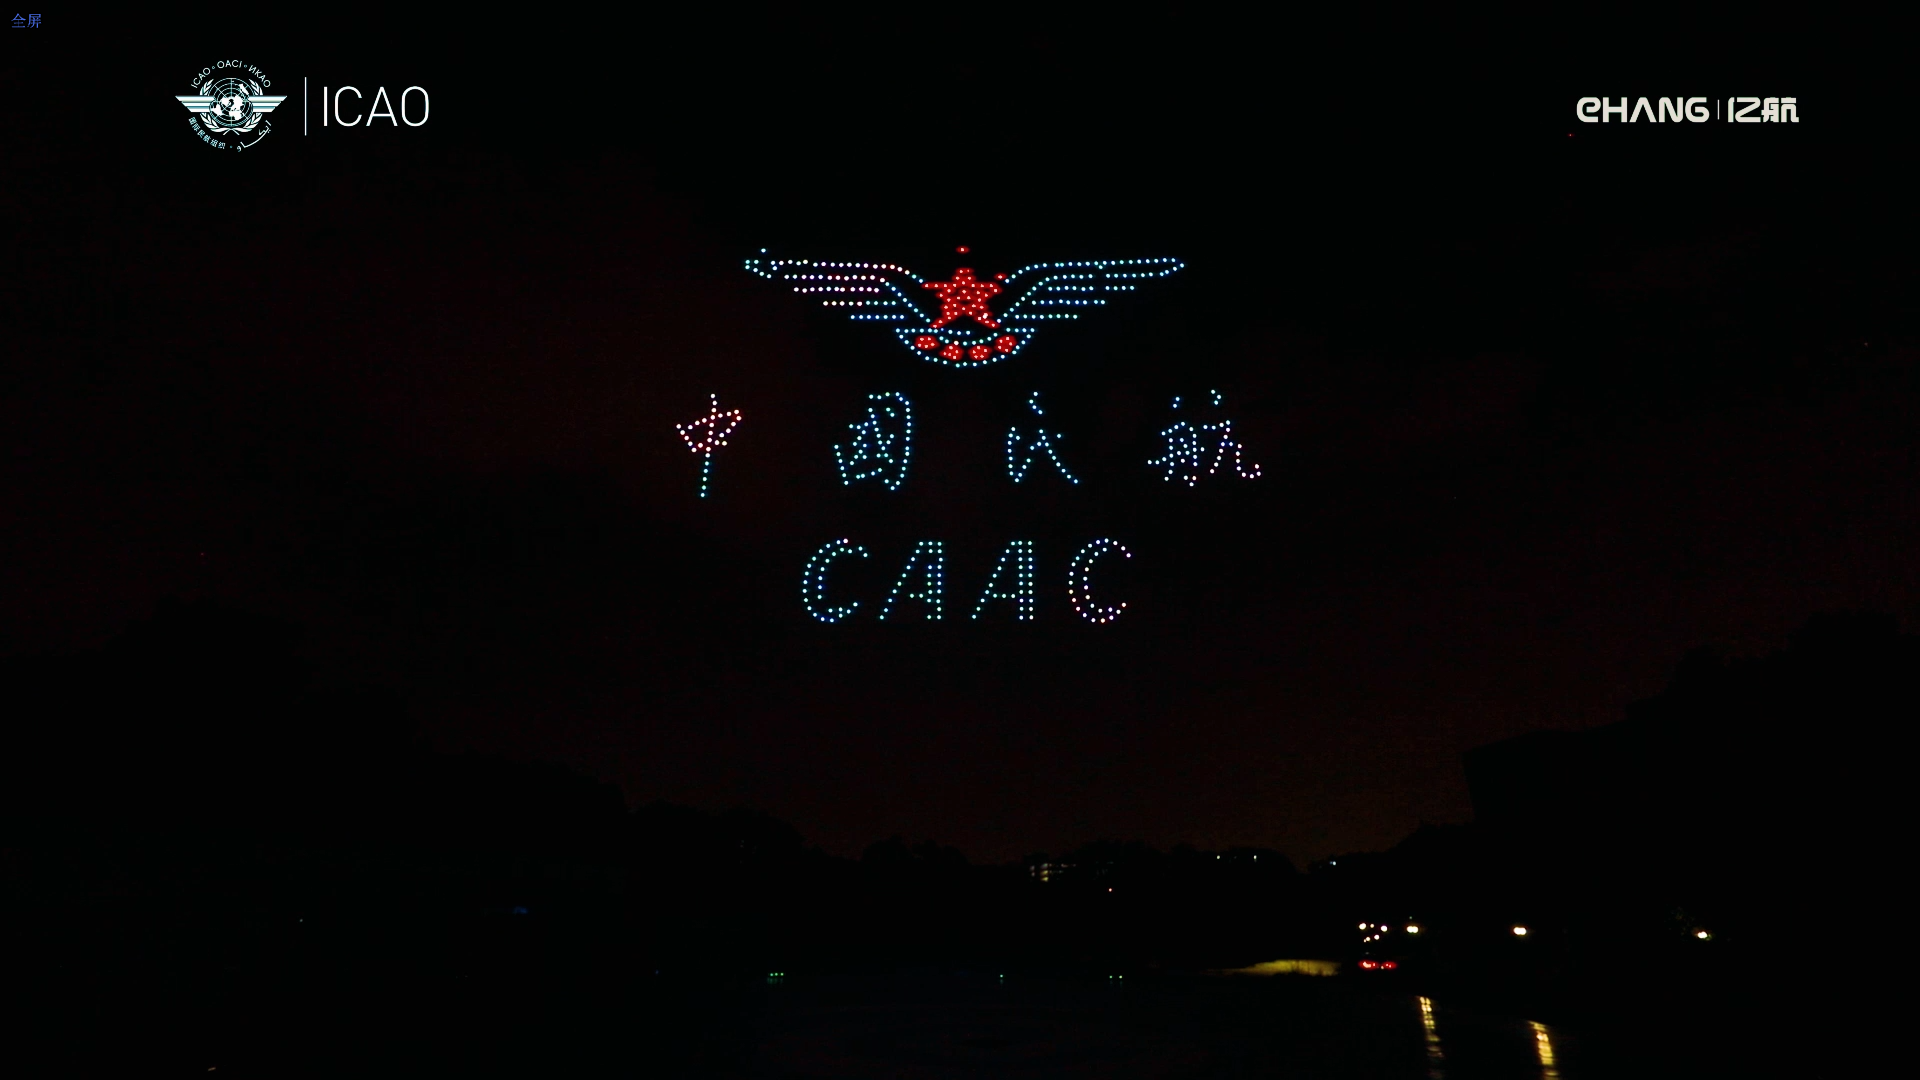 EHang celebrates ICAO Innovation Fair a great success by the magic AAV light shows.